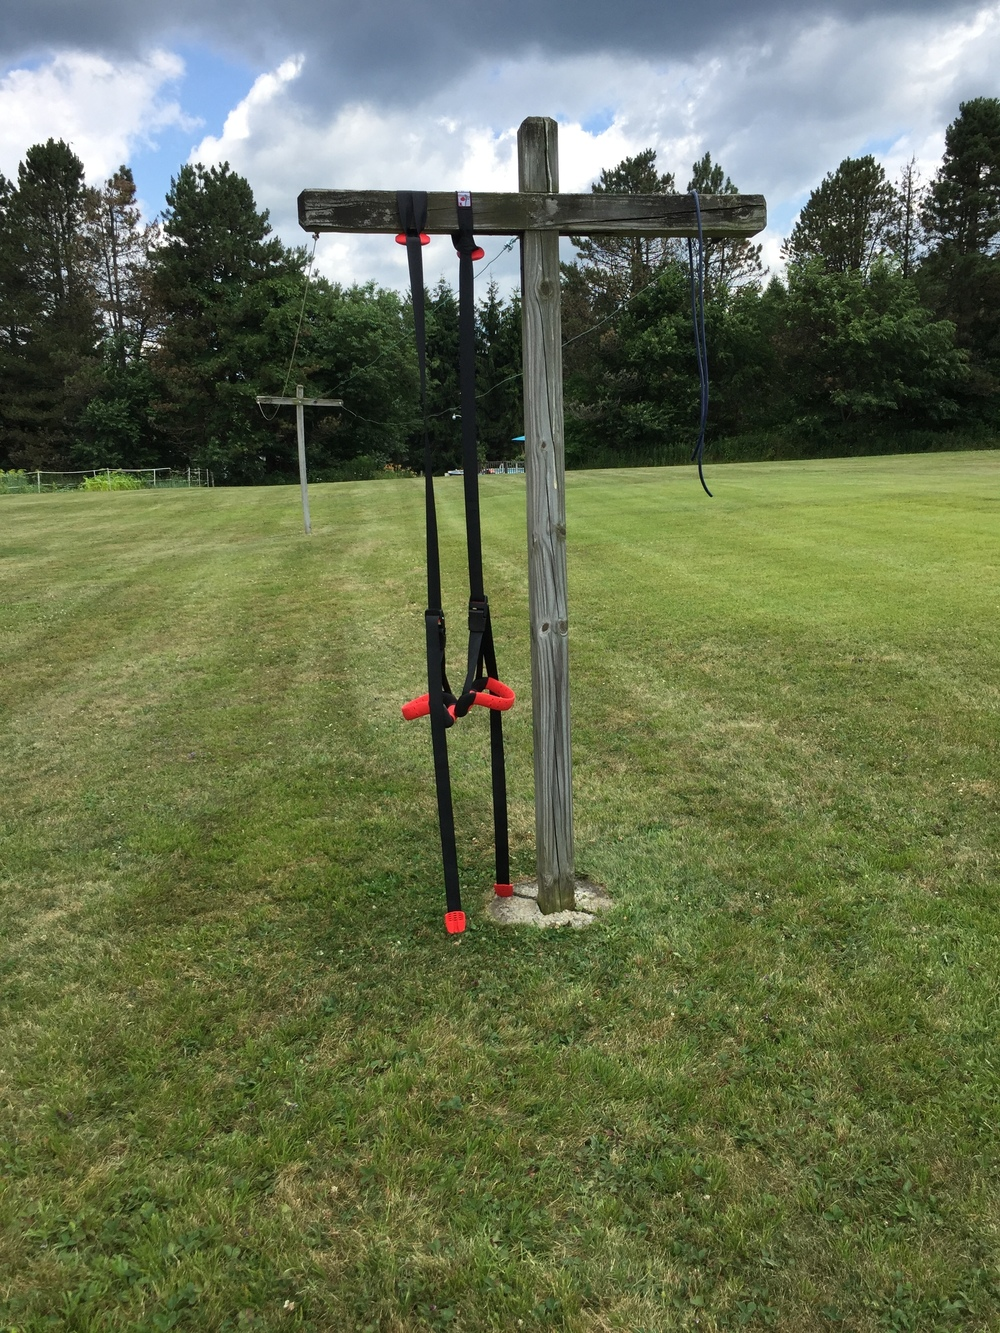 My parents clothesline pole made a perfect spot for a 20 minute circuit. No, I didn't crack the cement at the base of the pole. At least I don't think so...